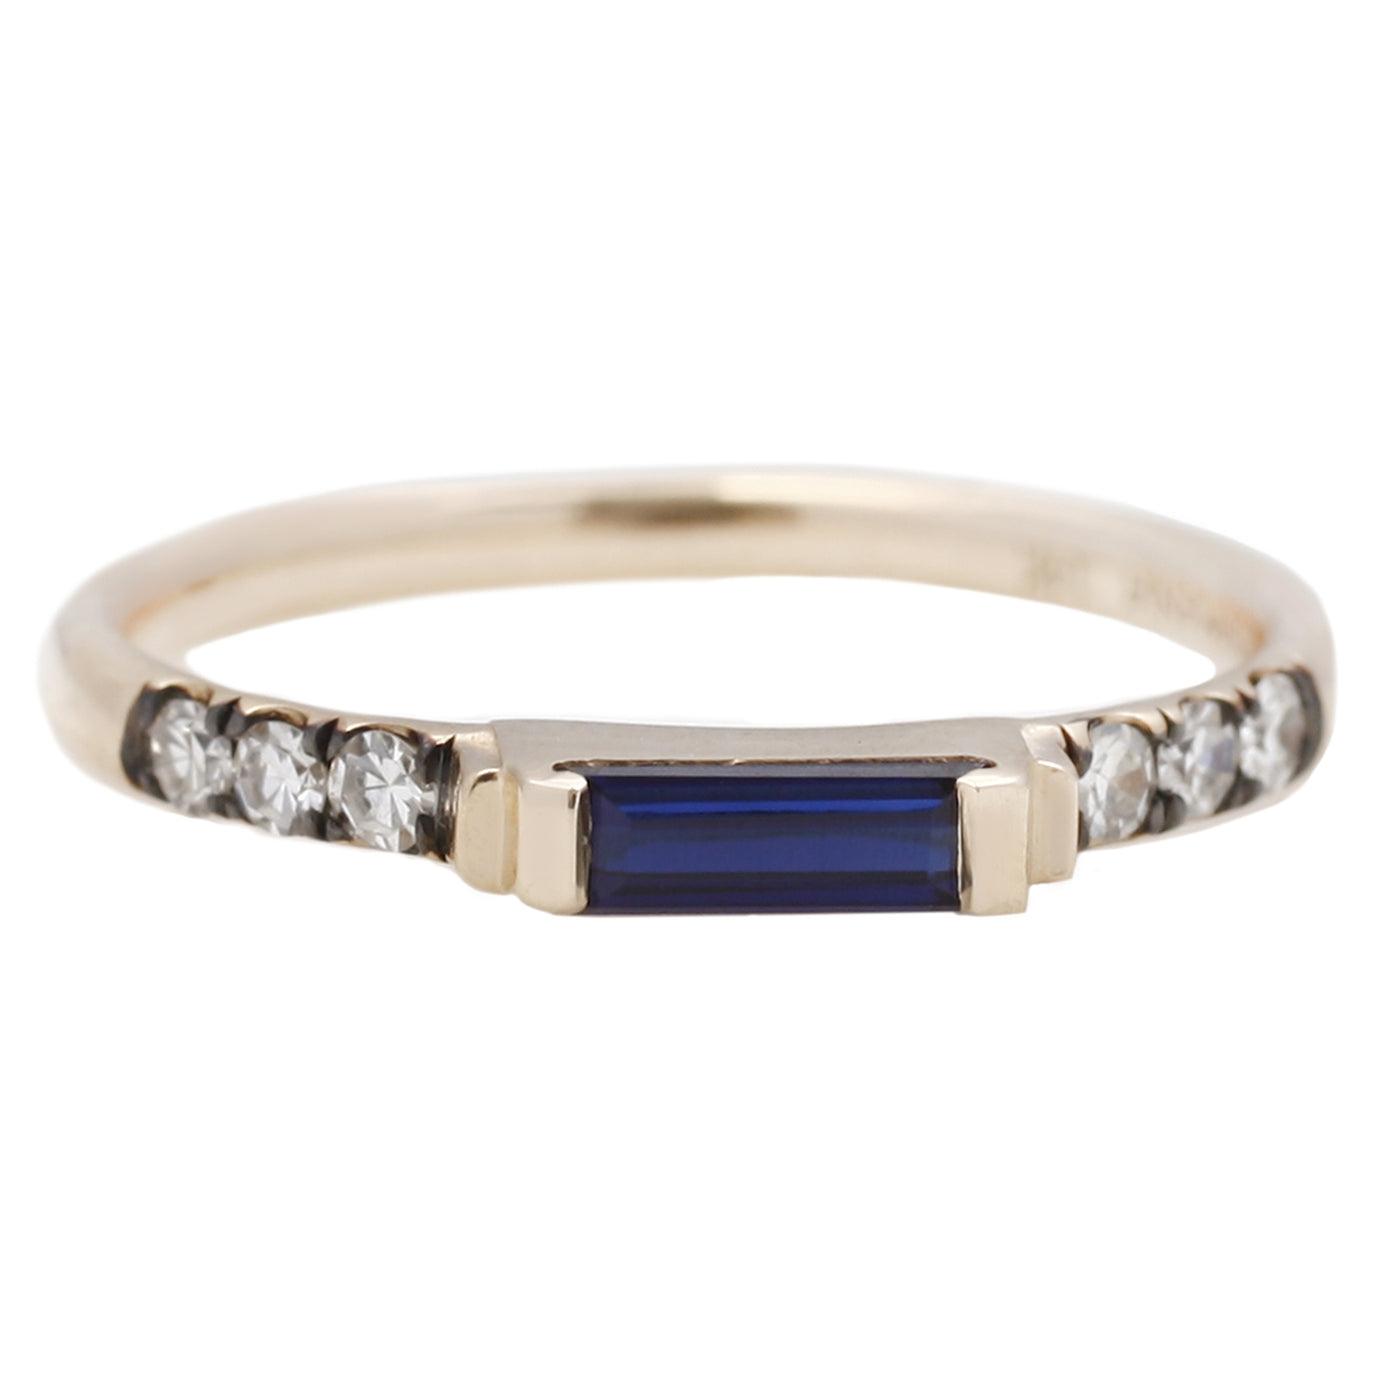 ManiaMania Blue Sapphire Illumination Ring